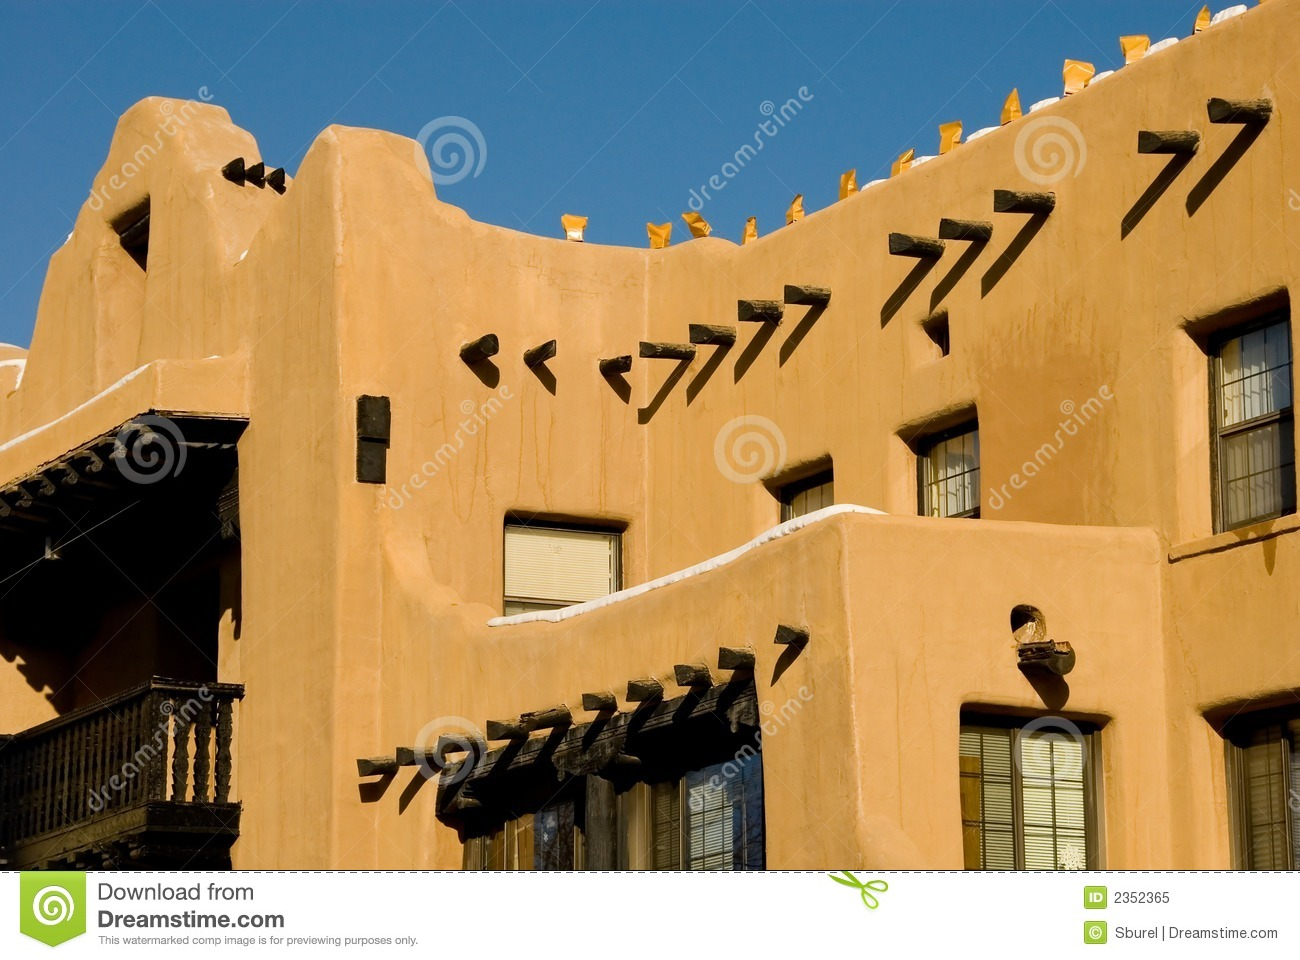 Southwest adobe architecture royalty free stock photo image 2352365 - How to build an adobe house ...